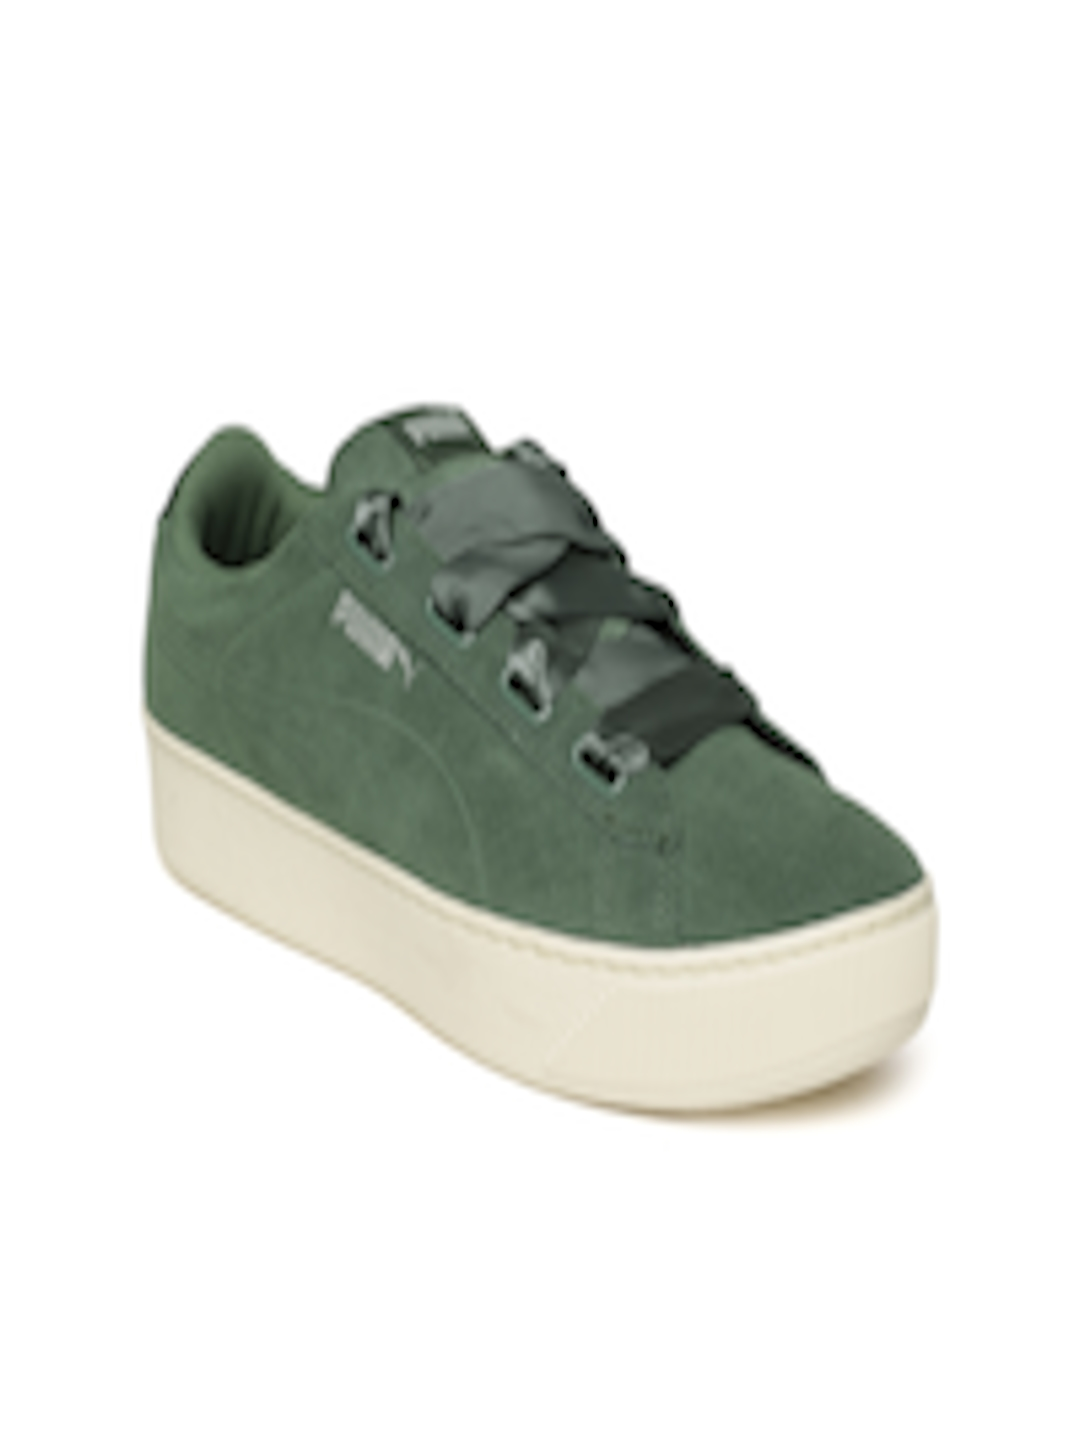 official photos b045d 57088 Buy Puma Women Olive Green Vikky Platform Ribbon S Suede Sneakers - -  Footwear for Women